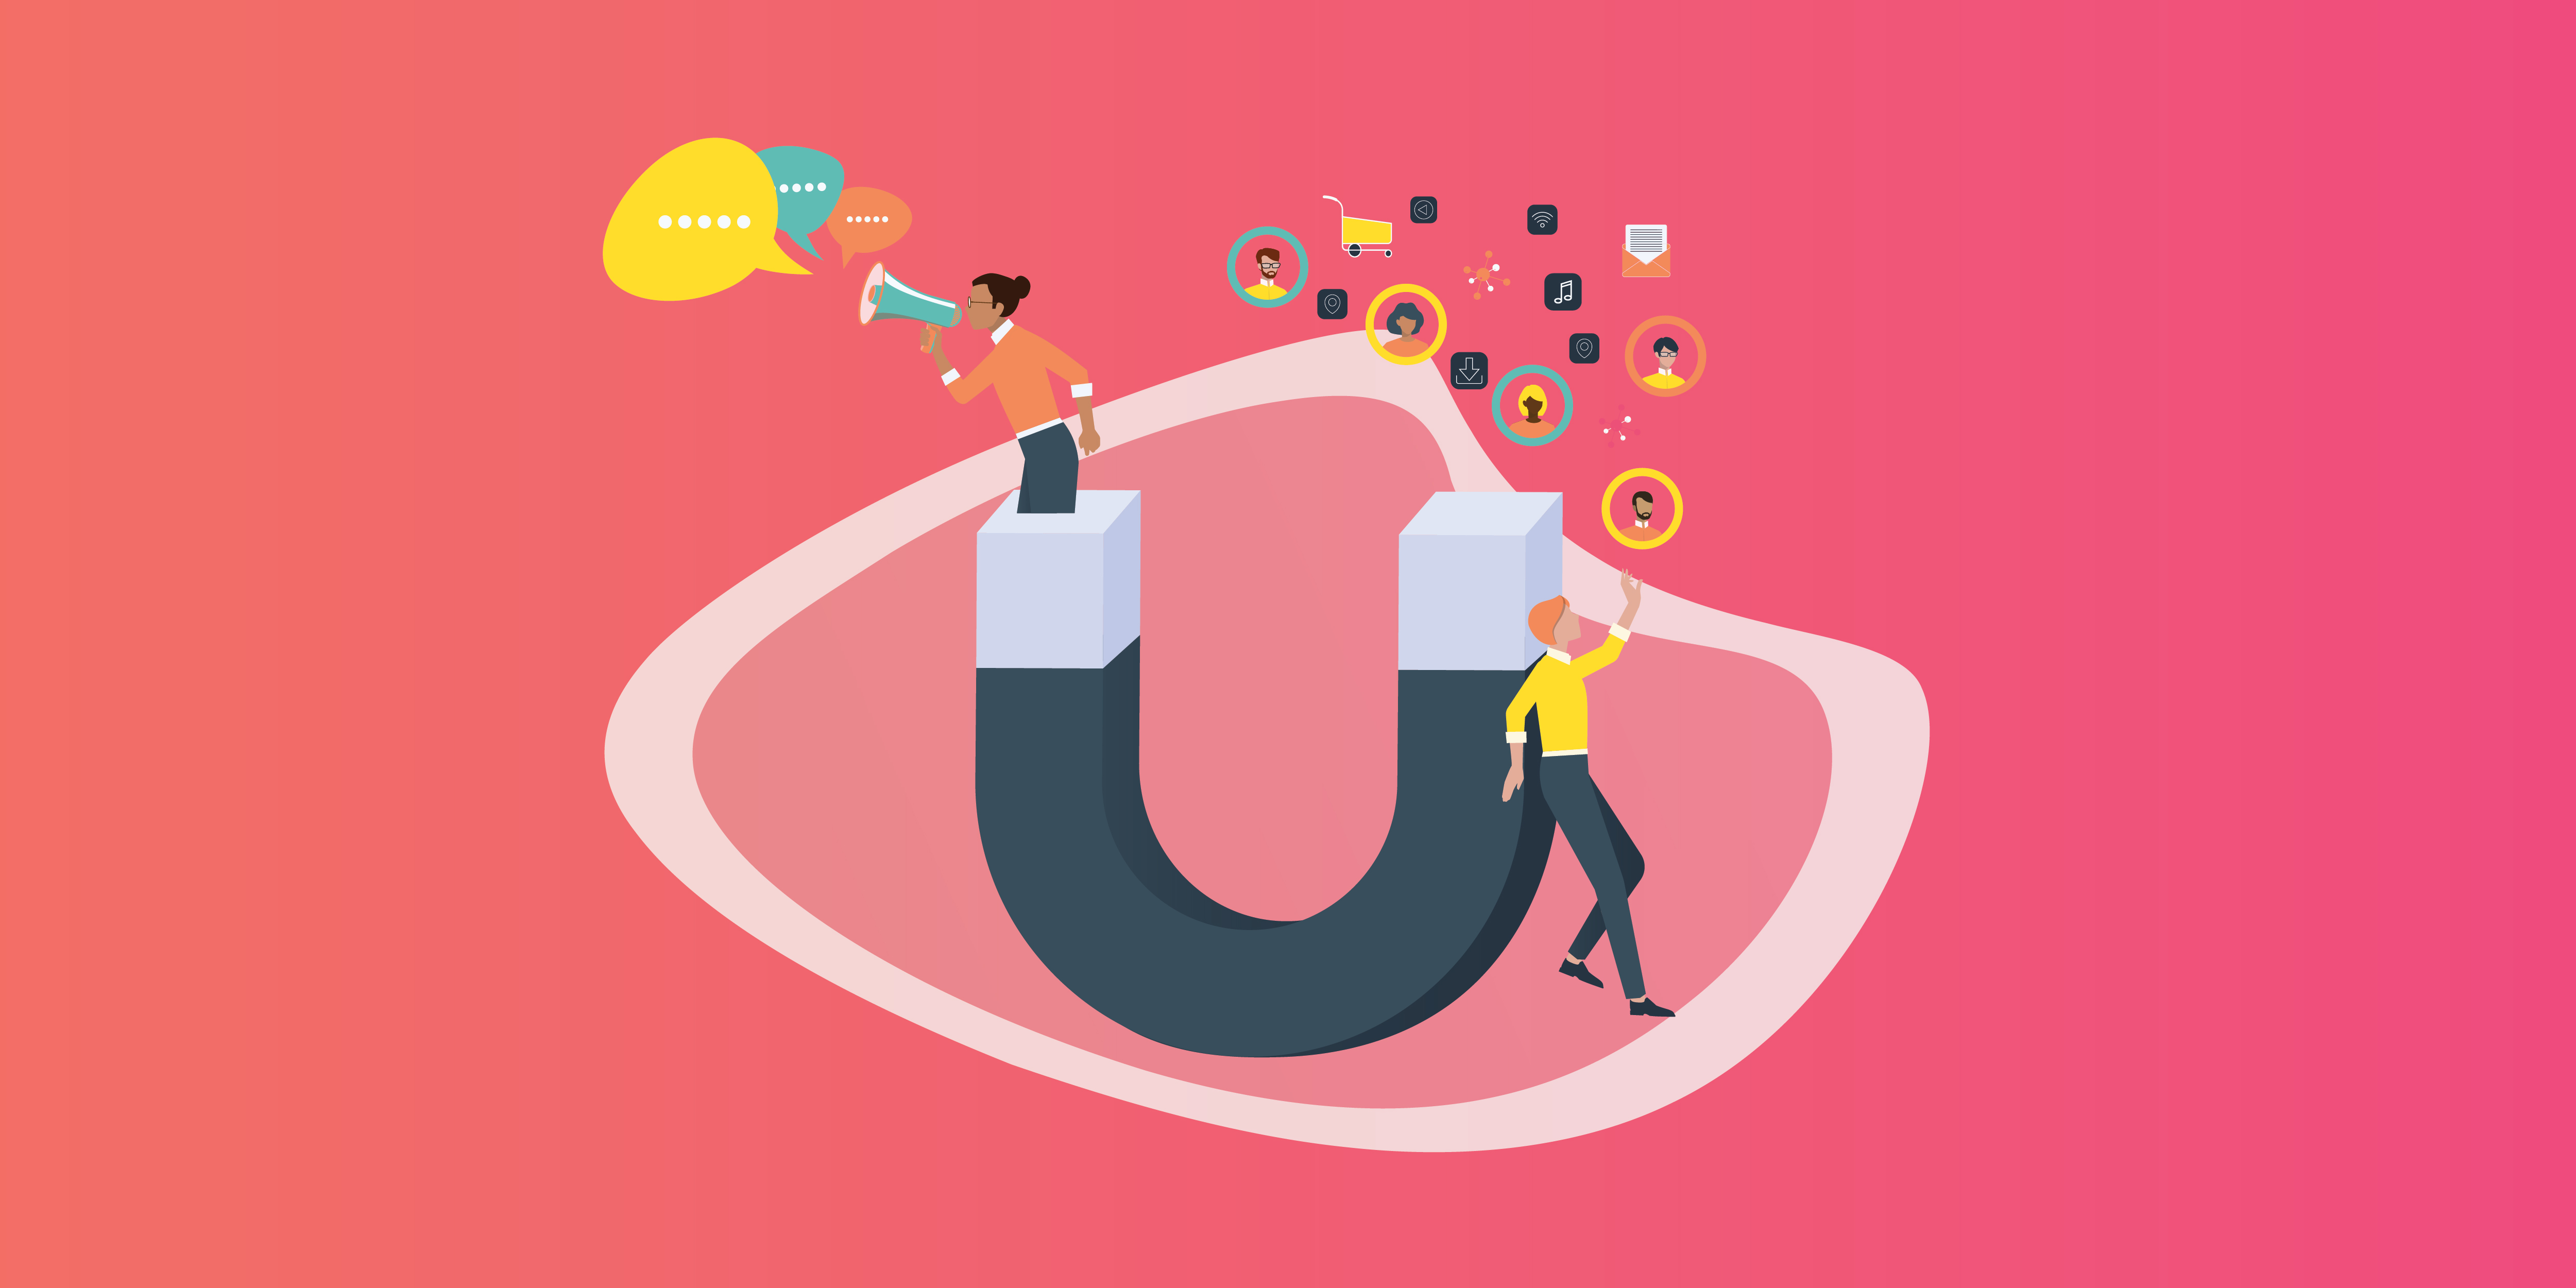 Inbound Marketing Graphic featuring people standing on the magnet